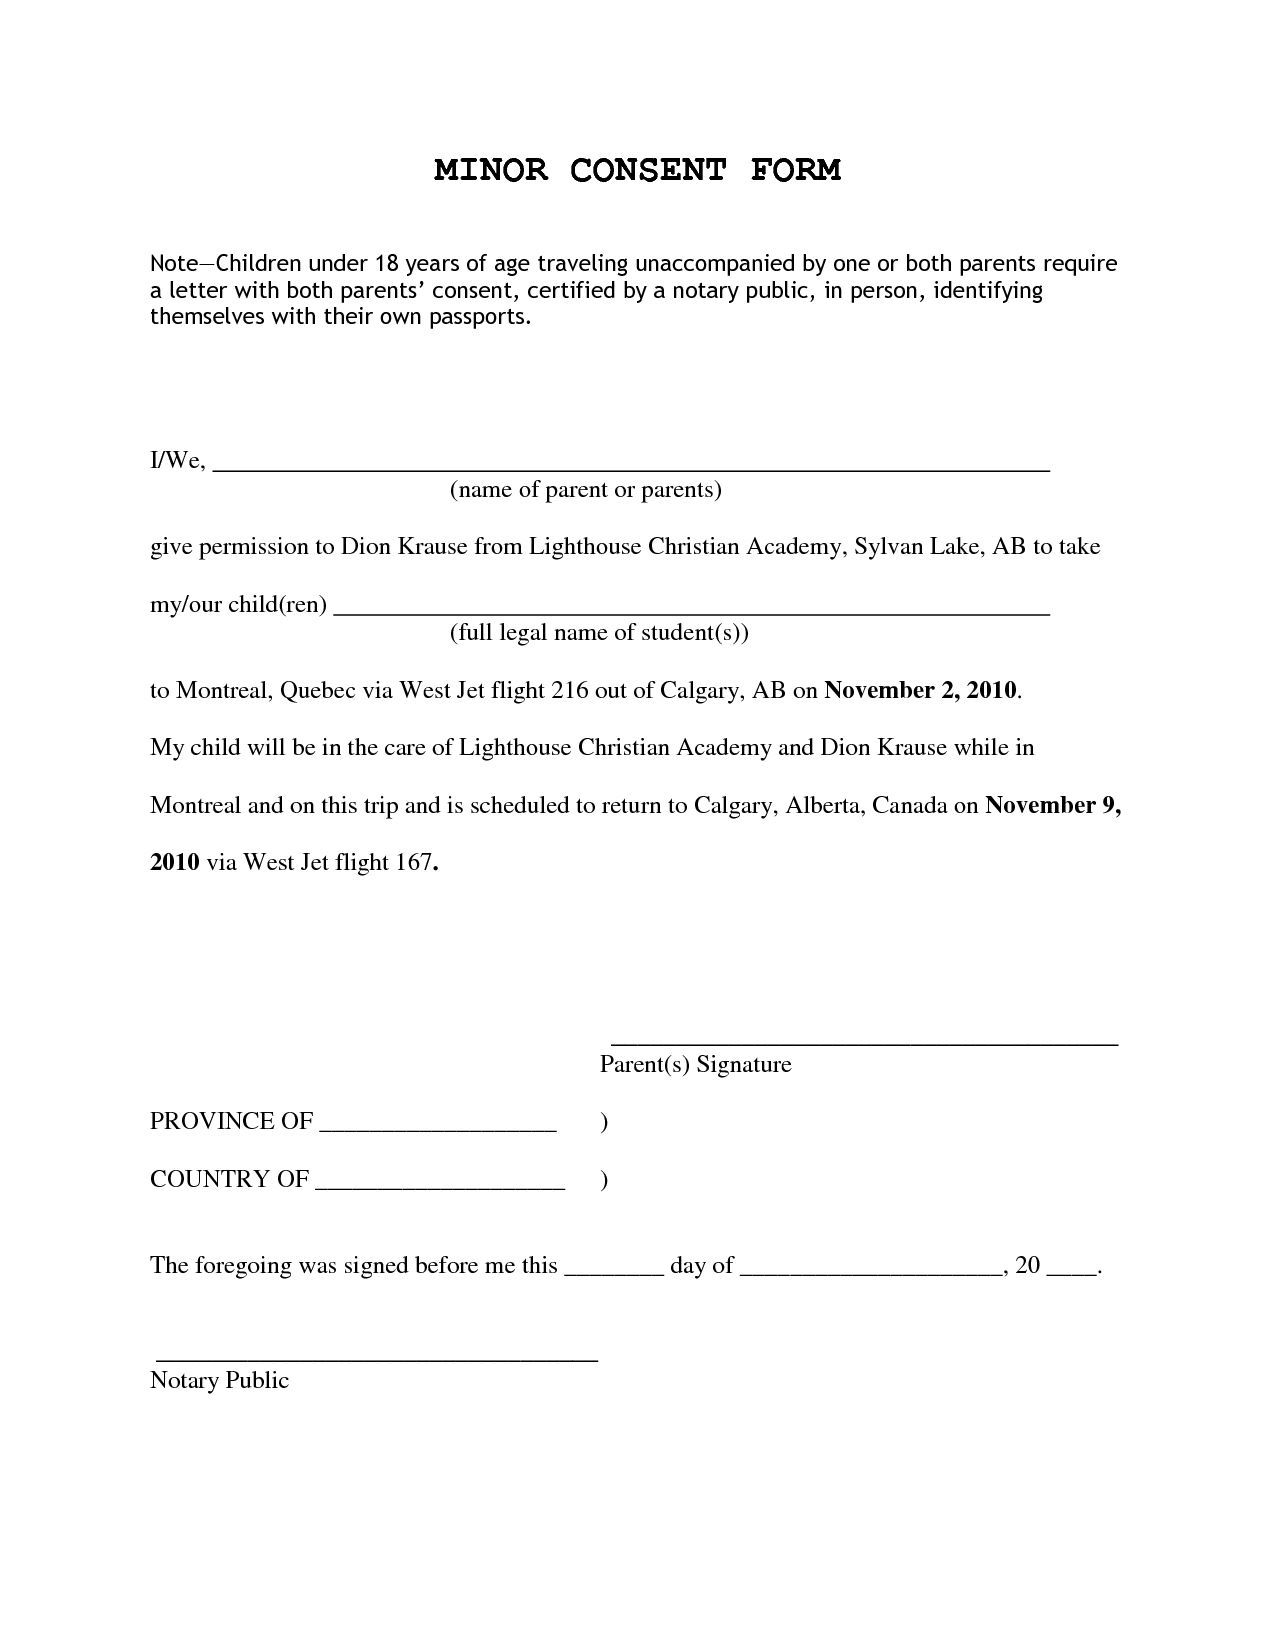 Perfect Consent Permission Inside Letter For Children Travelling Parental  Authorization Example Alone  Free Child Travel Consent Form Template